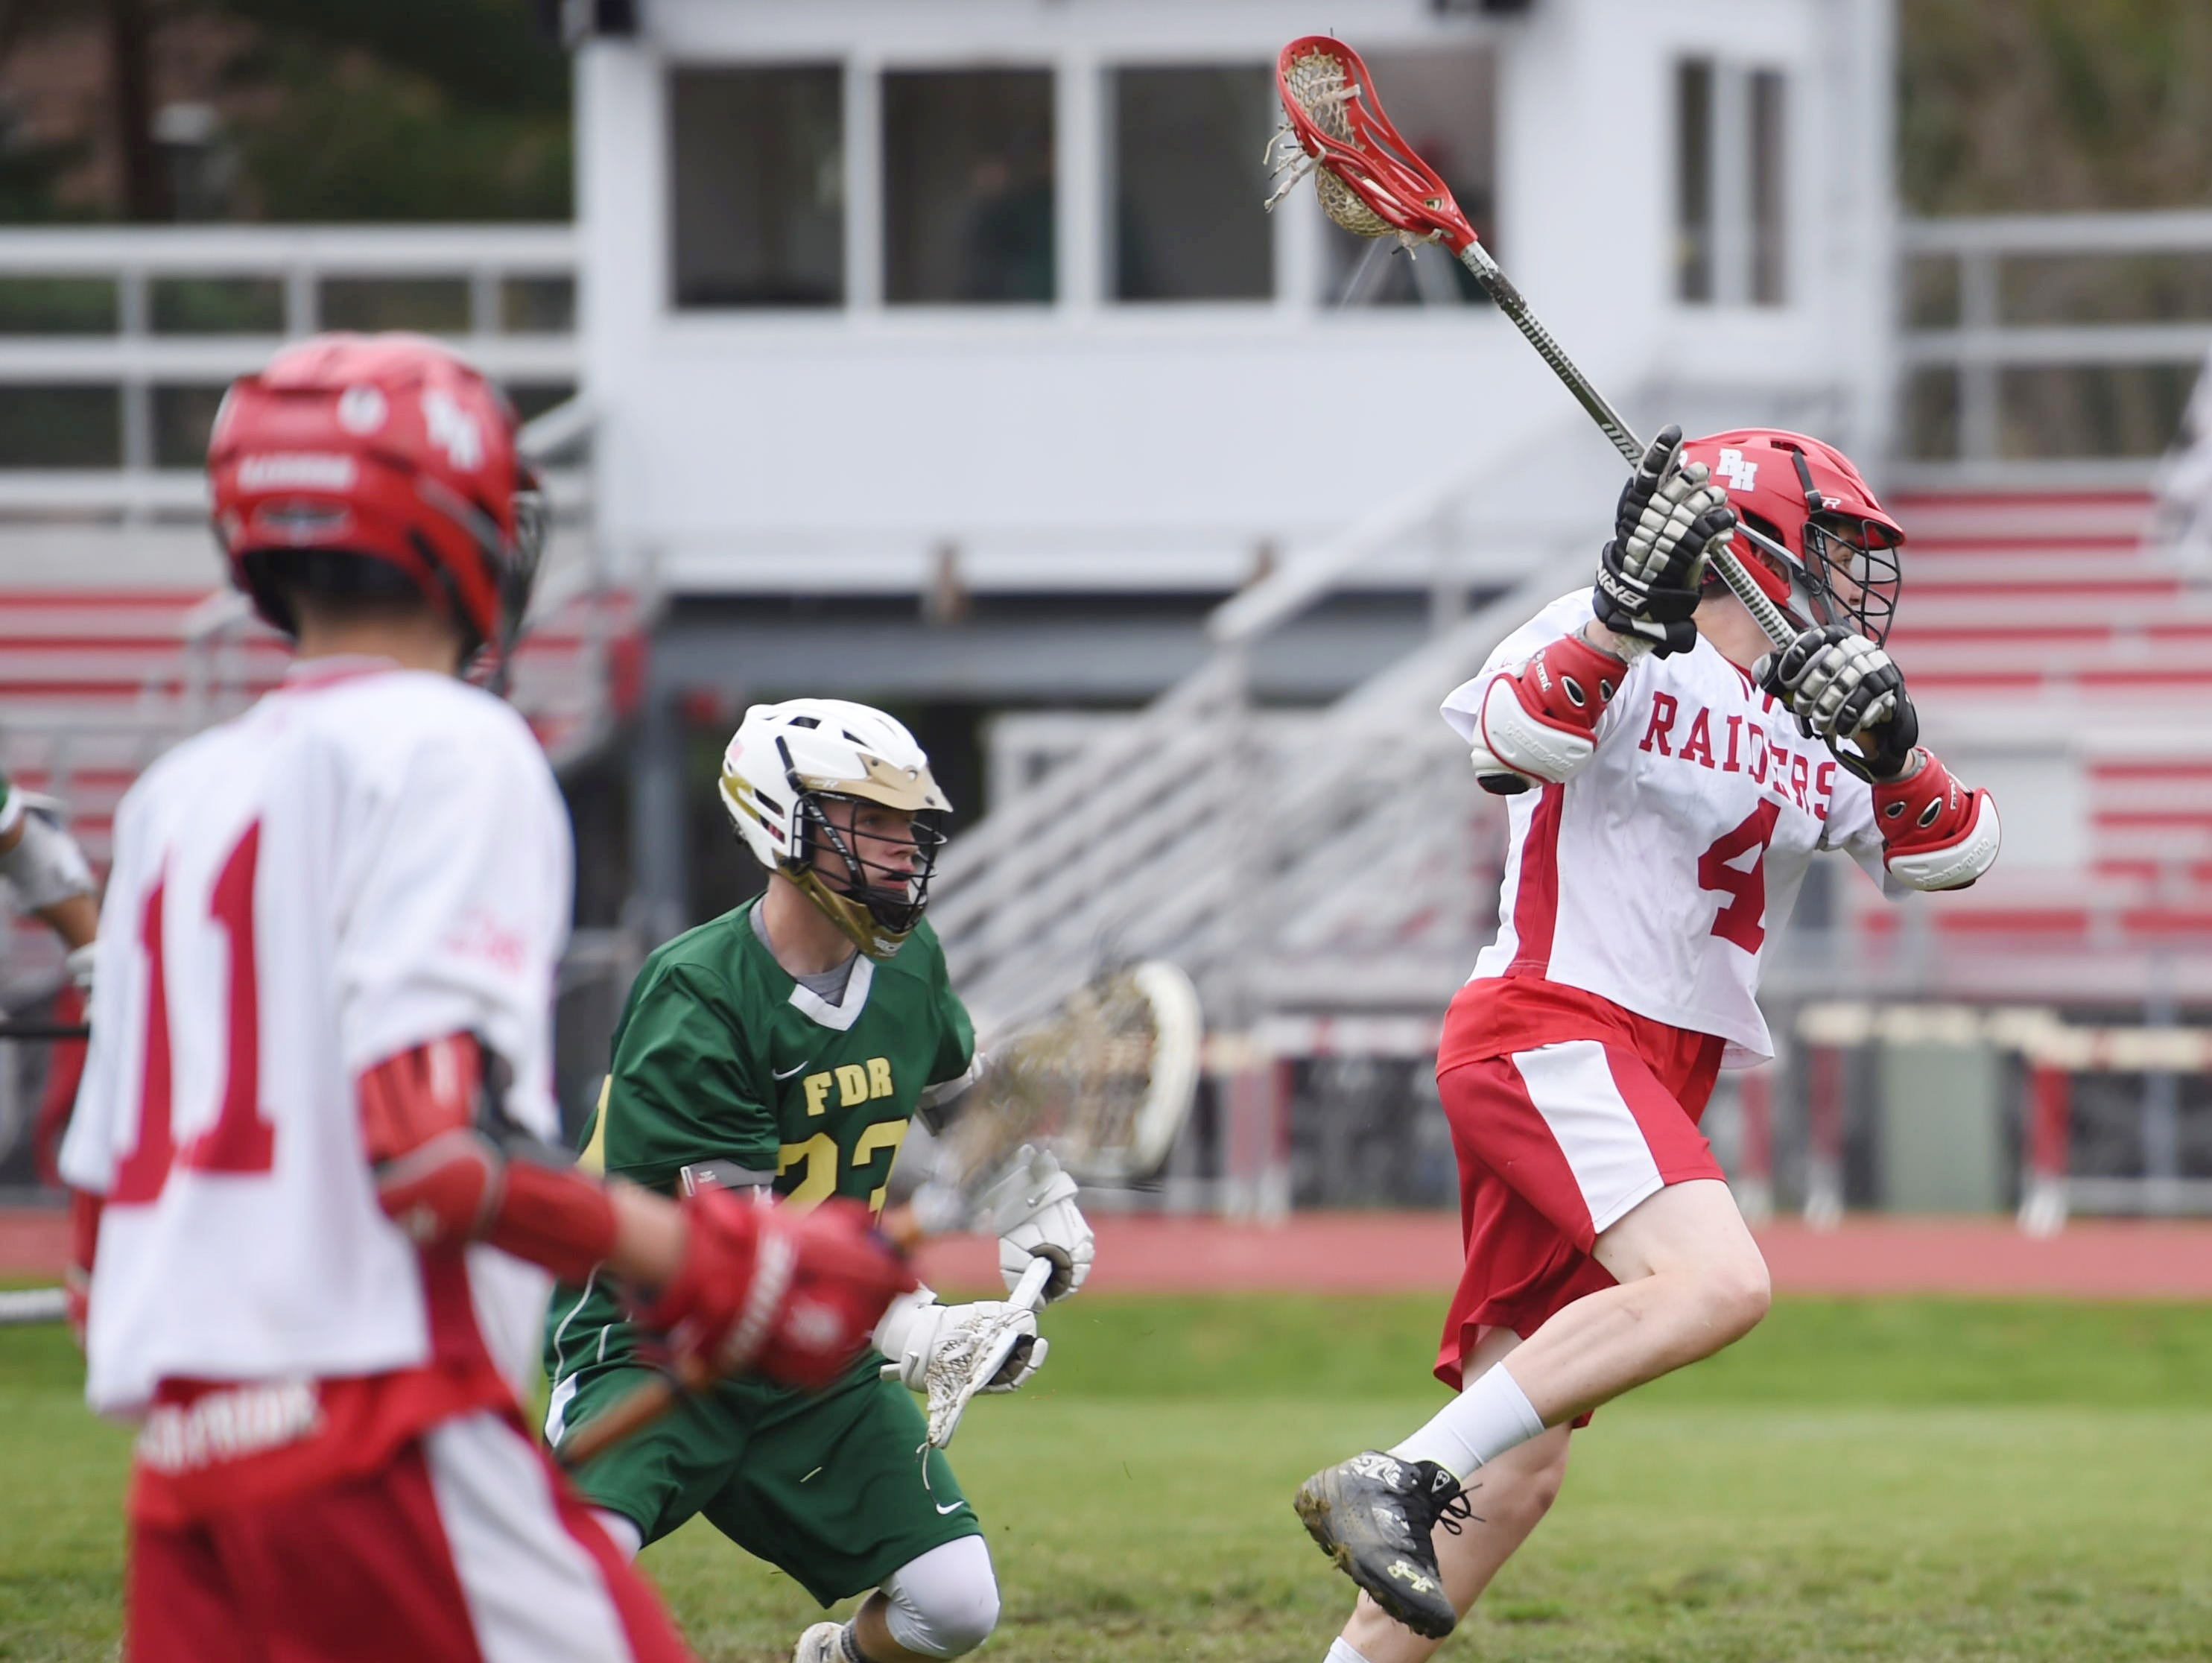 Red Hook's Cam Hackett leaps ahead of FDR's Travis Slocum to take a shot on goal during Tuesday's home game.